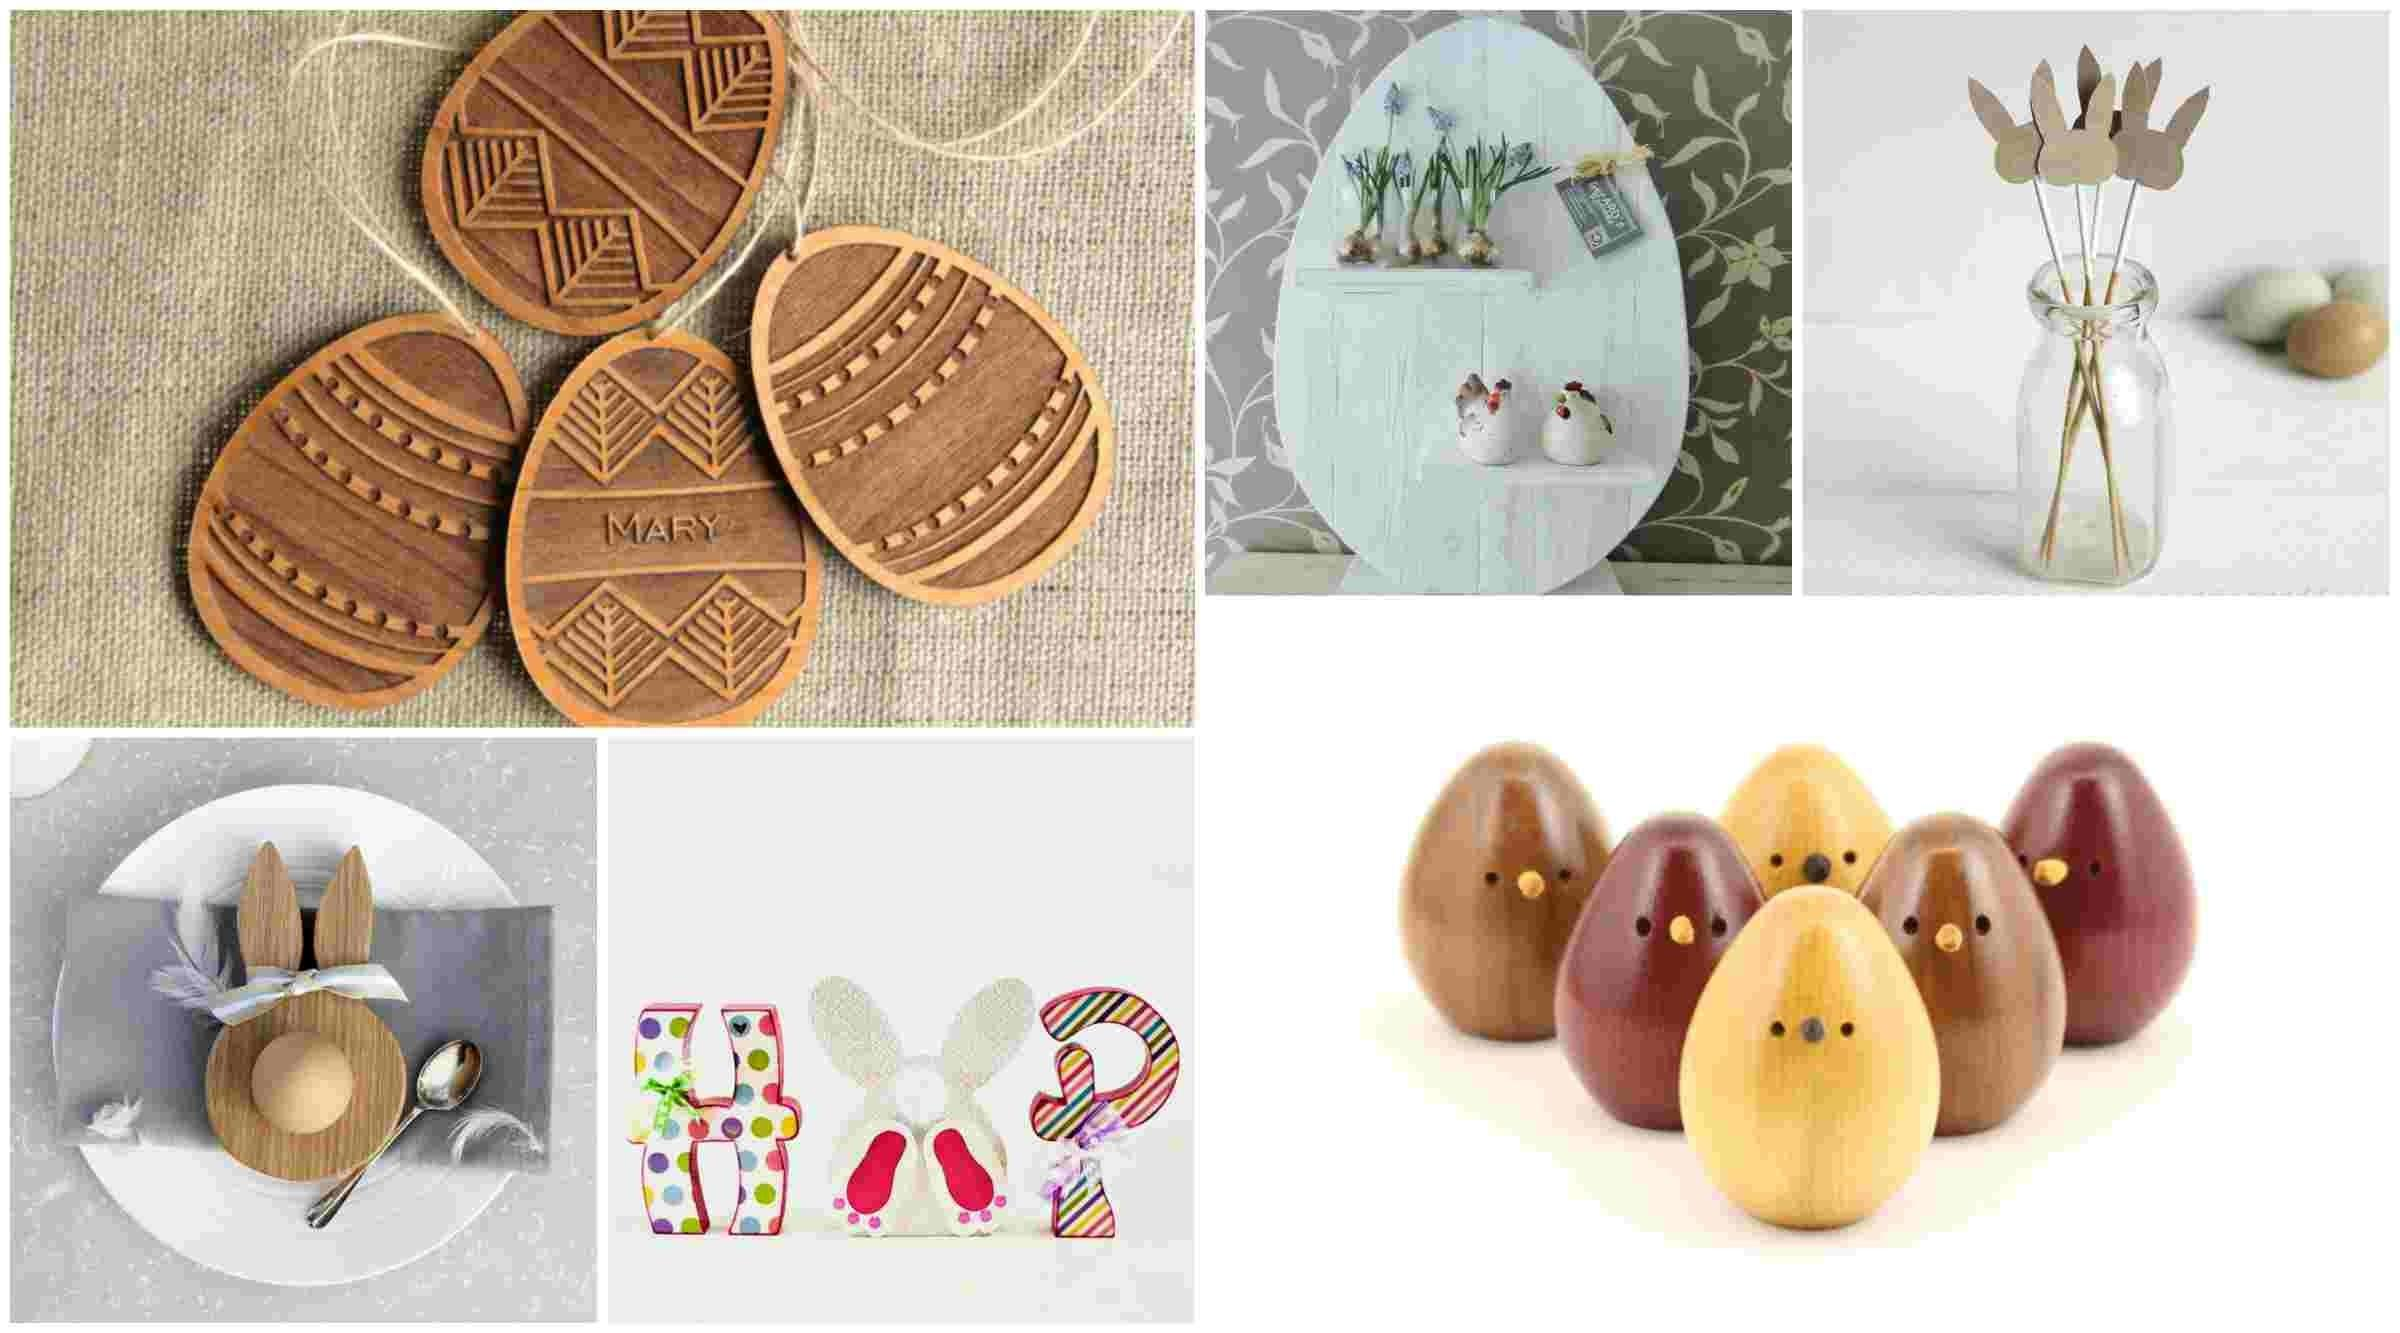 Wonderful Easter Decorations Made Wood Desired Home